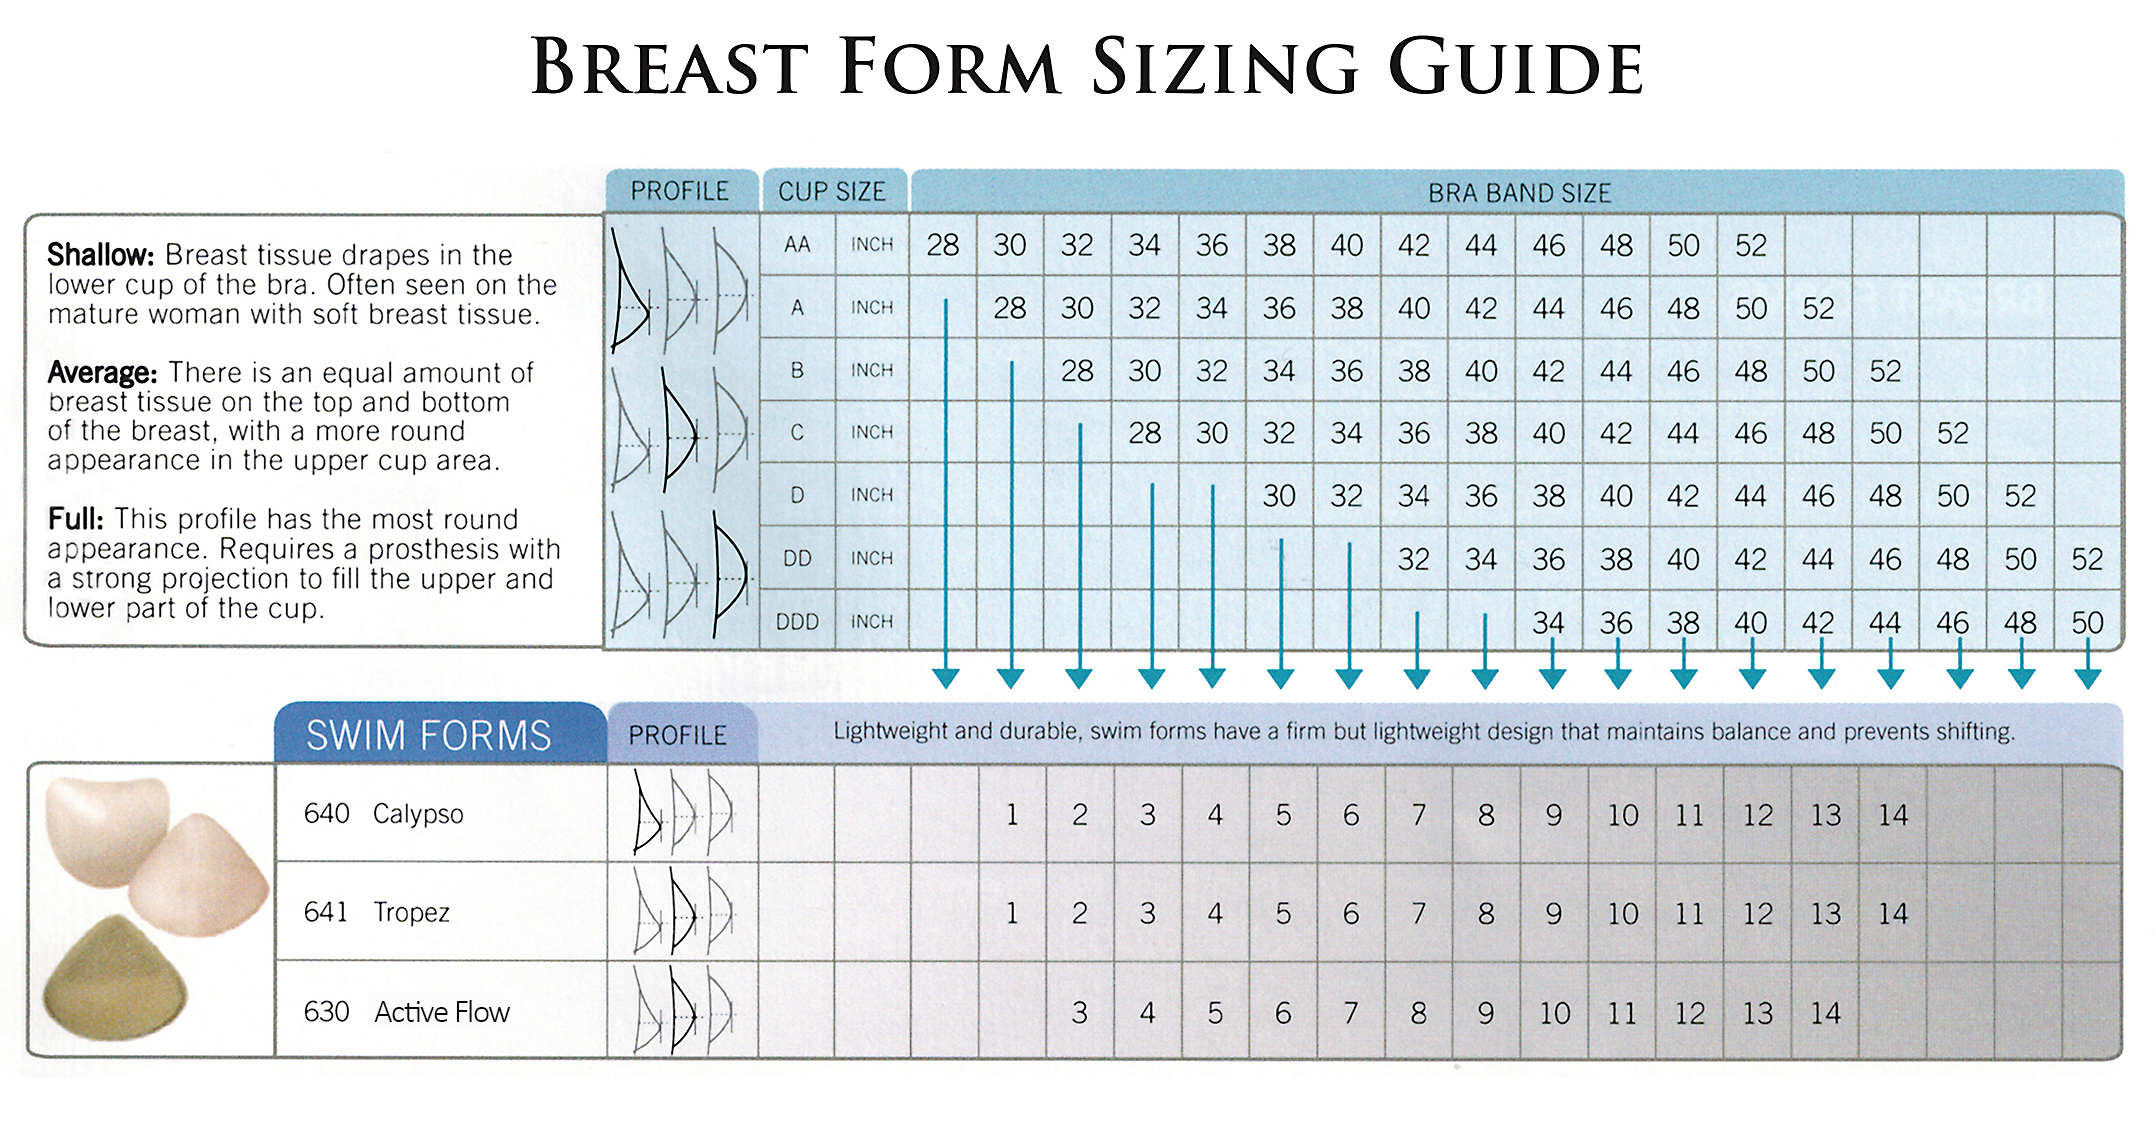 Breast Form Sizing Guide